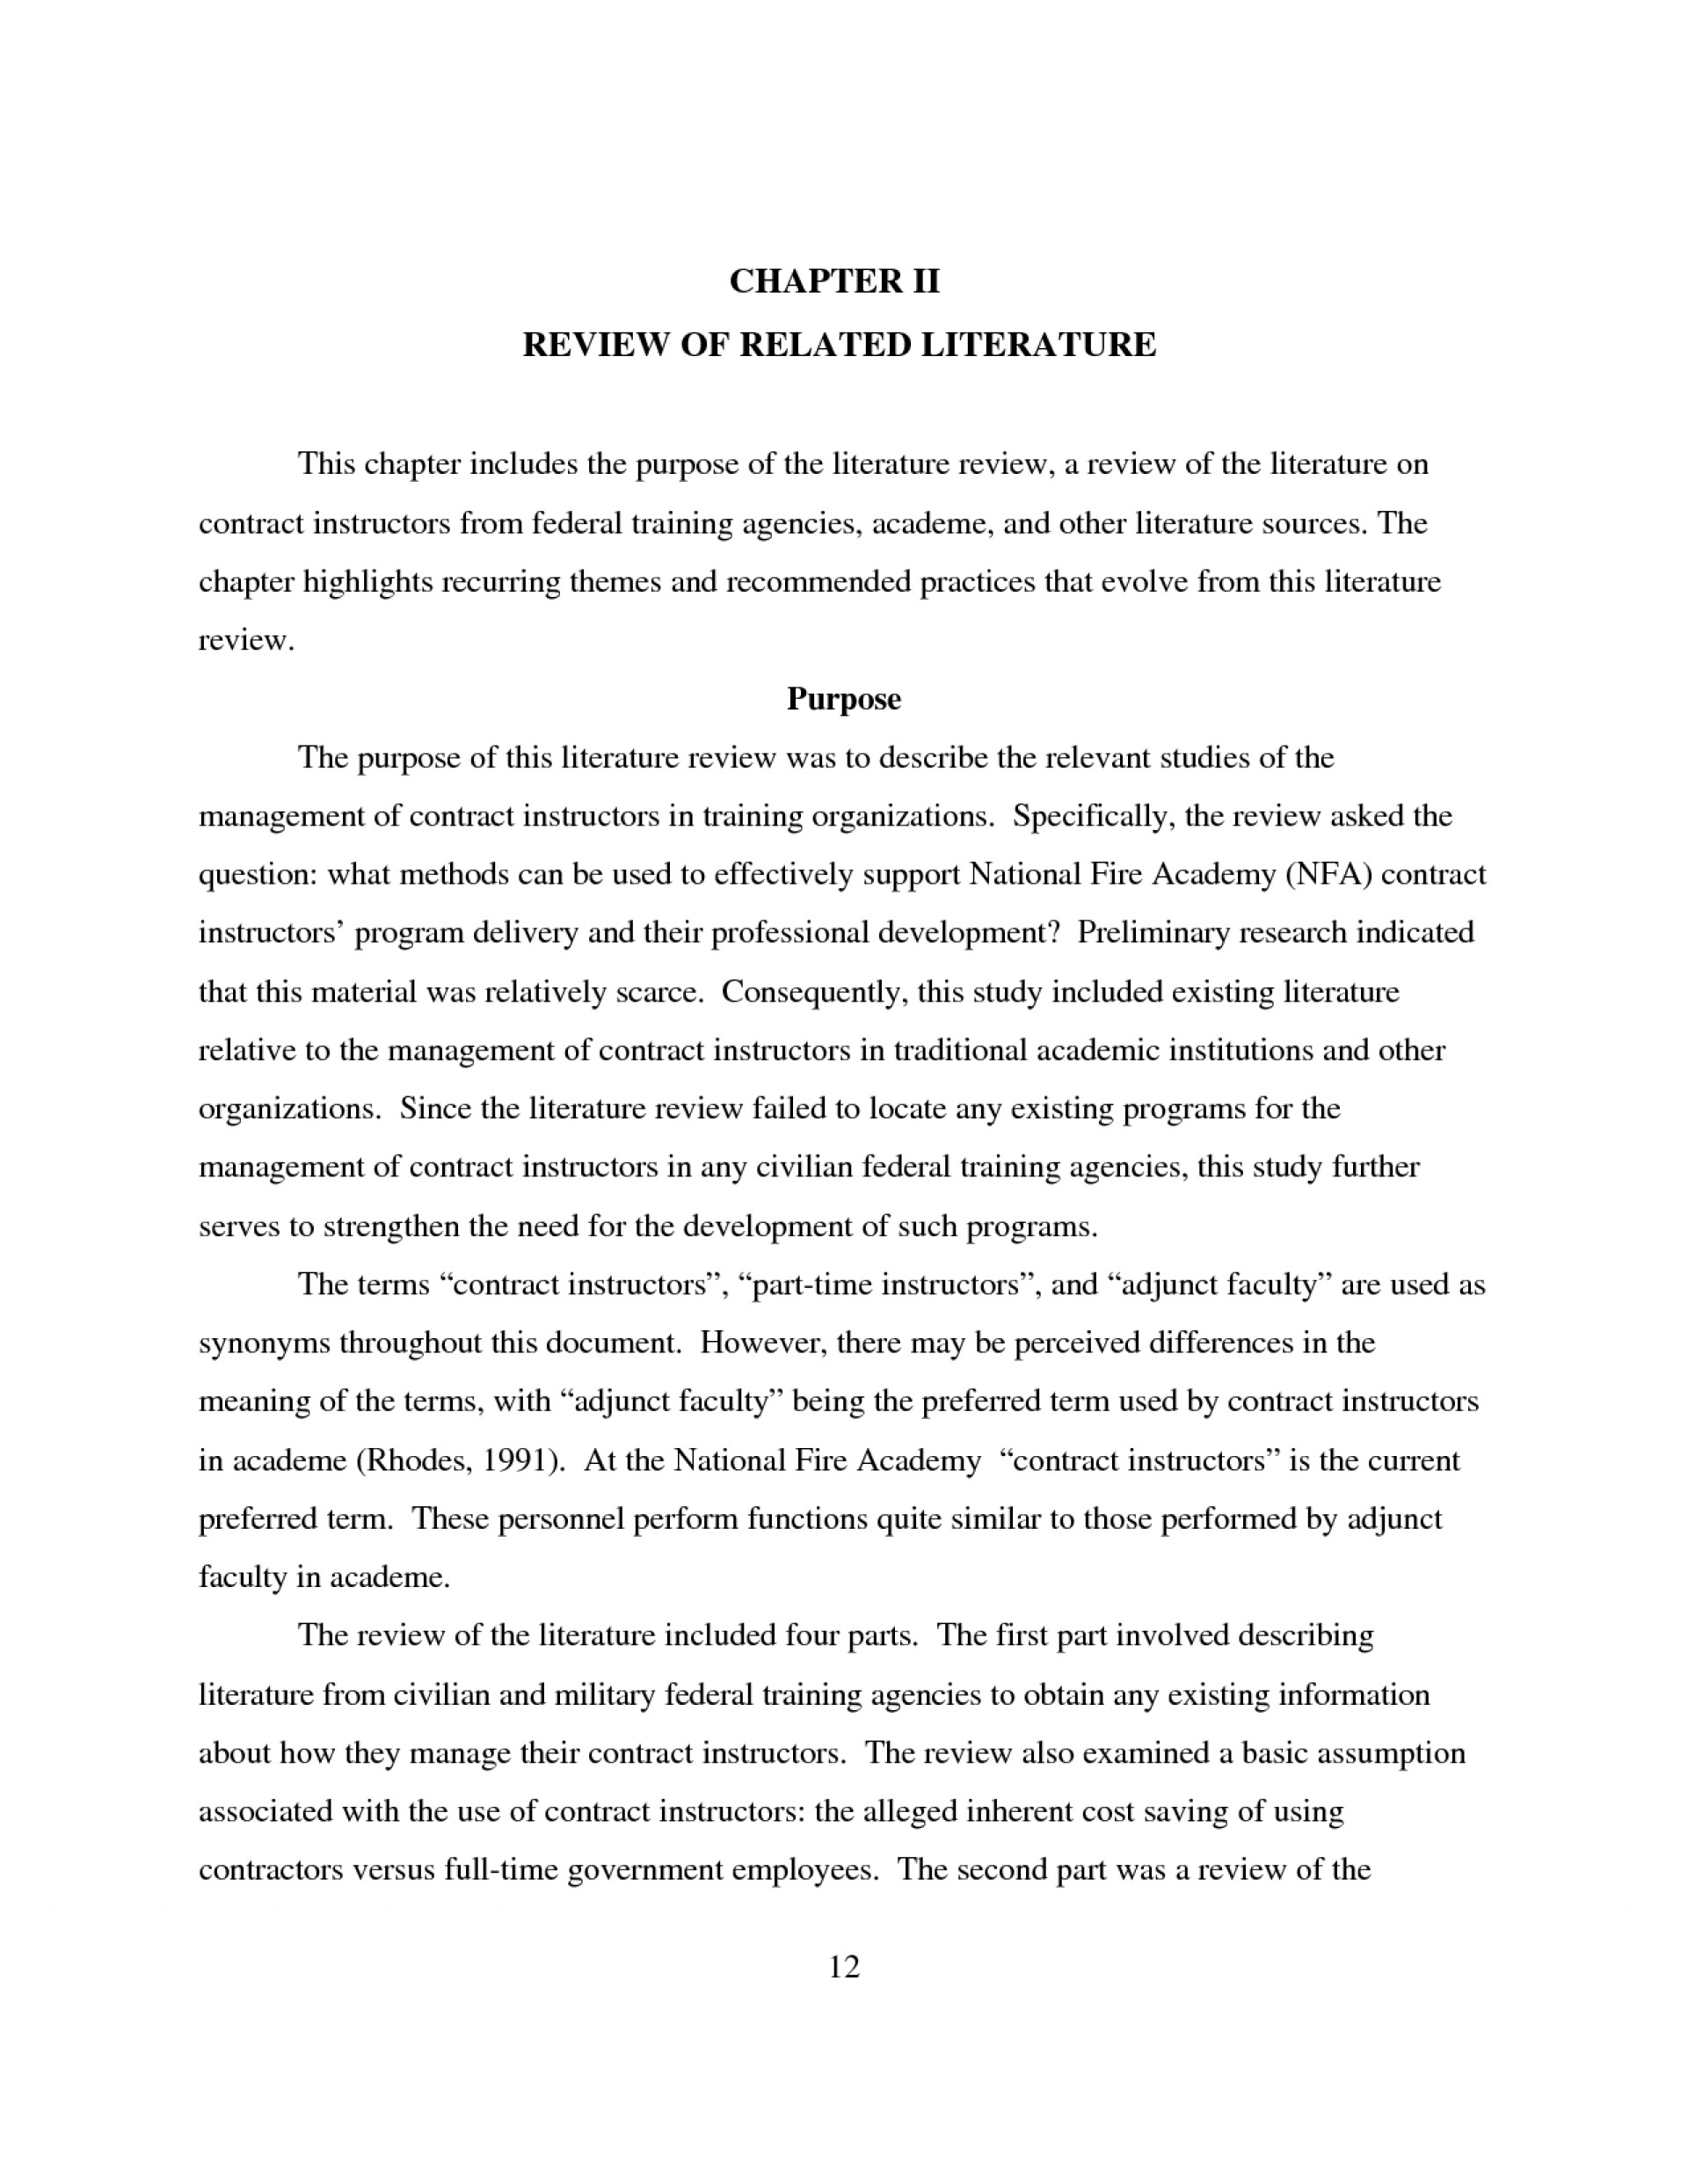 002 Example Research Paper Review Related Literature Imposing Of A 1920